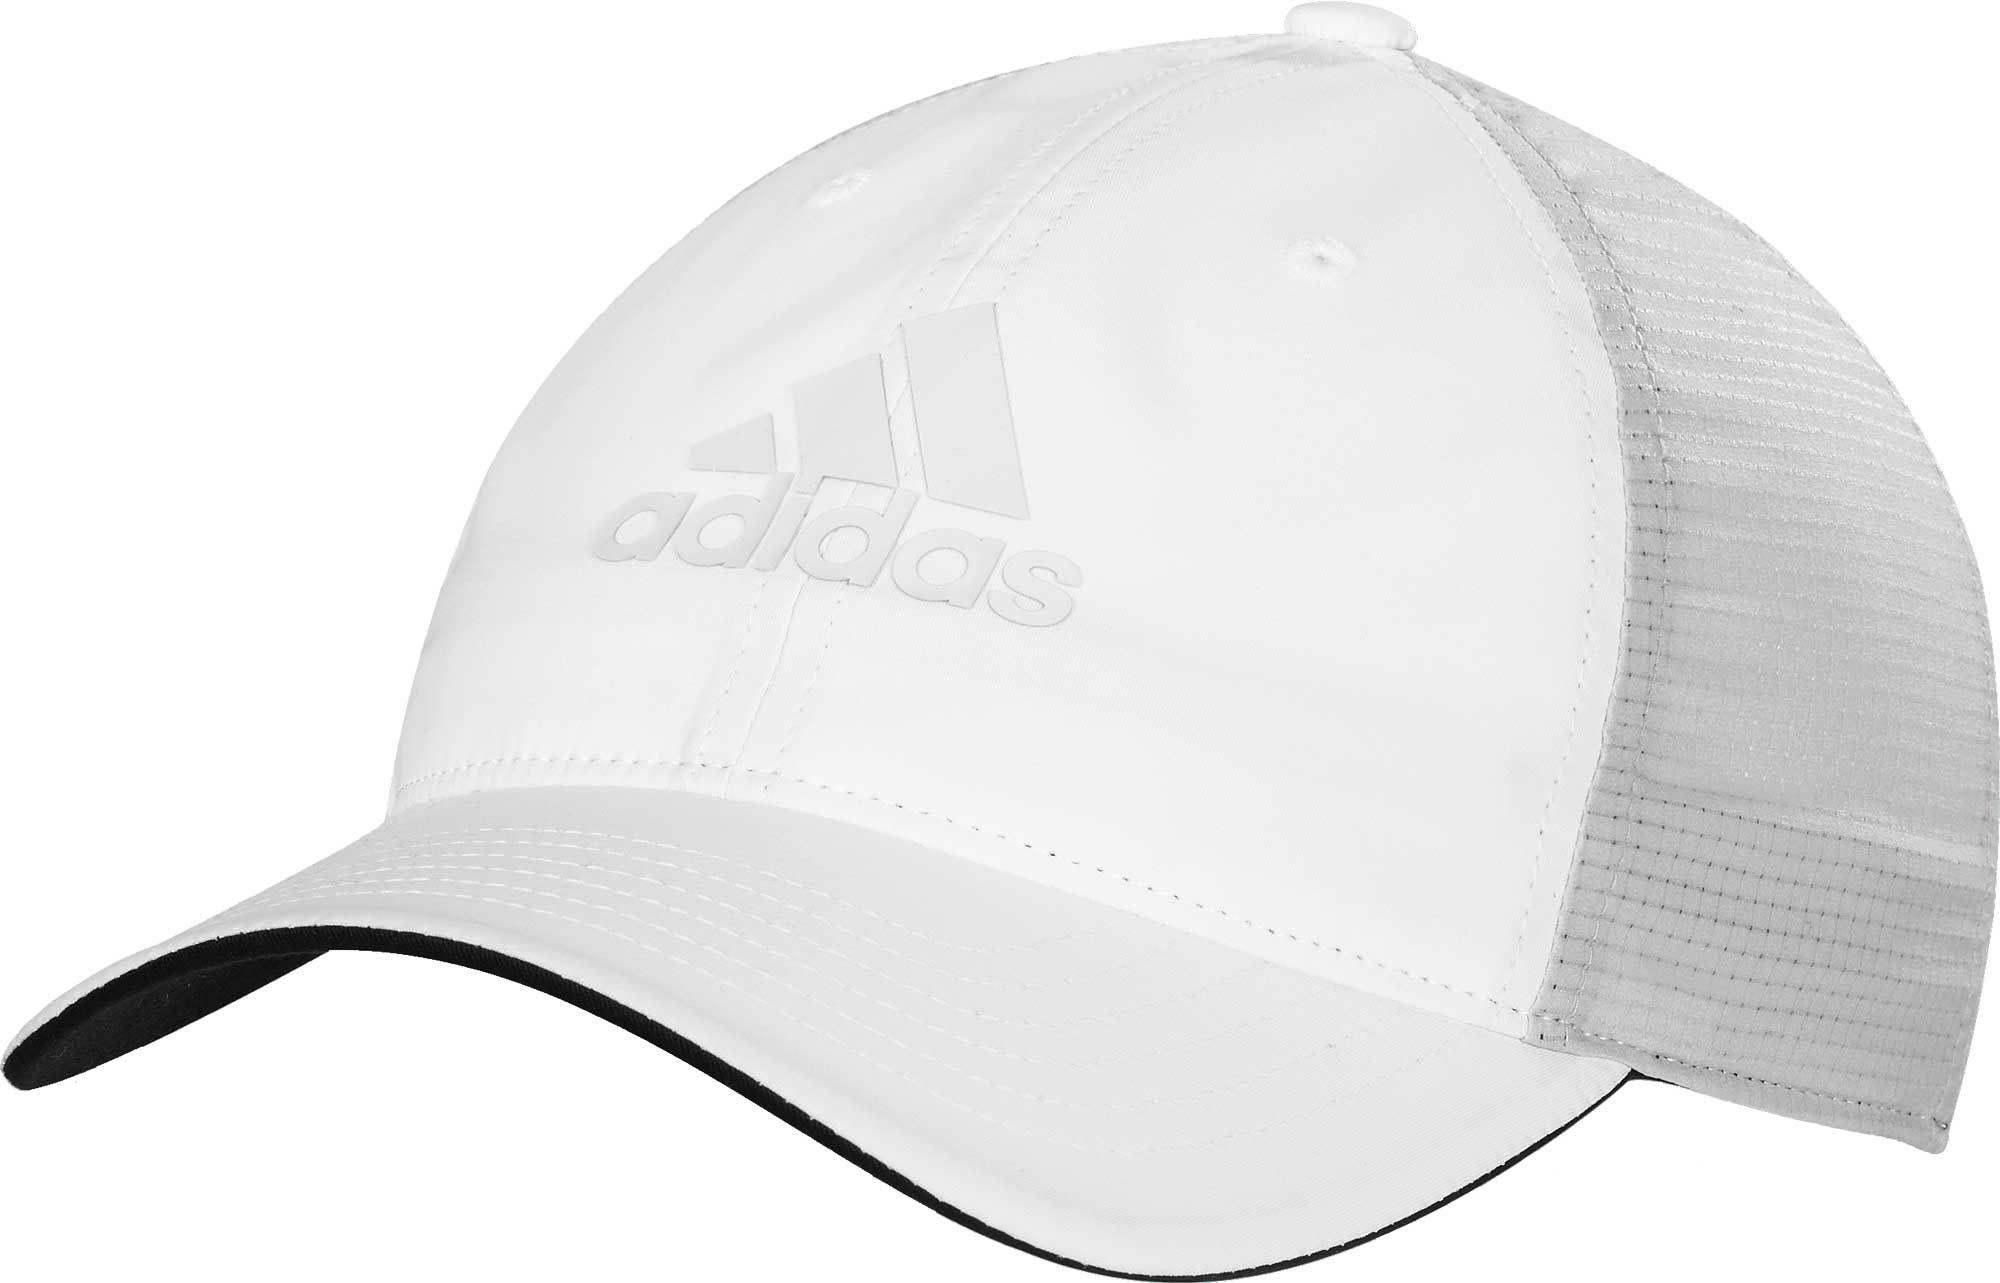 80d260308ac Lyst - Adidas Lightweight Climacool Golf Hat in White for Men